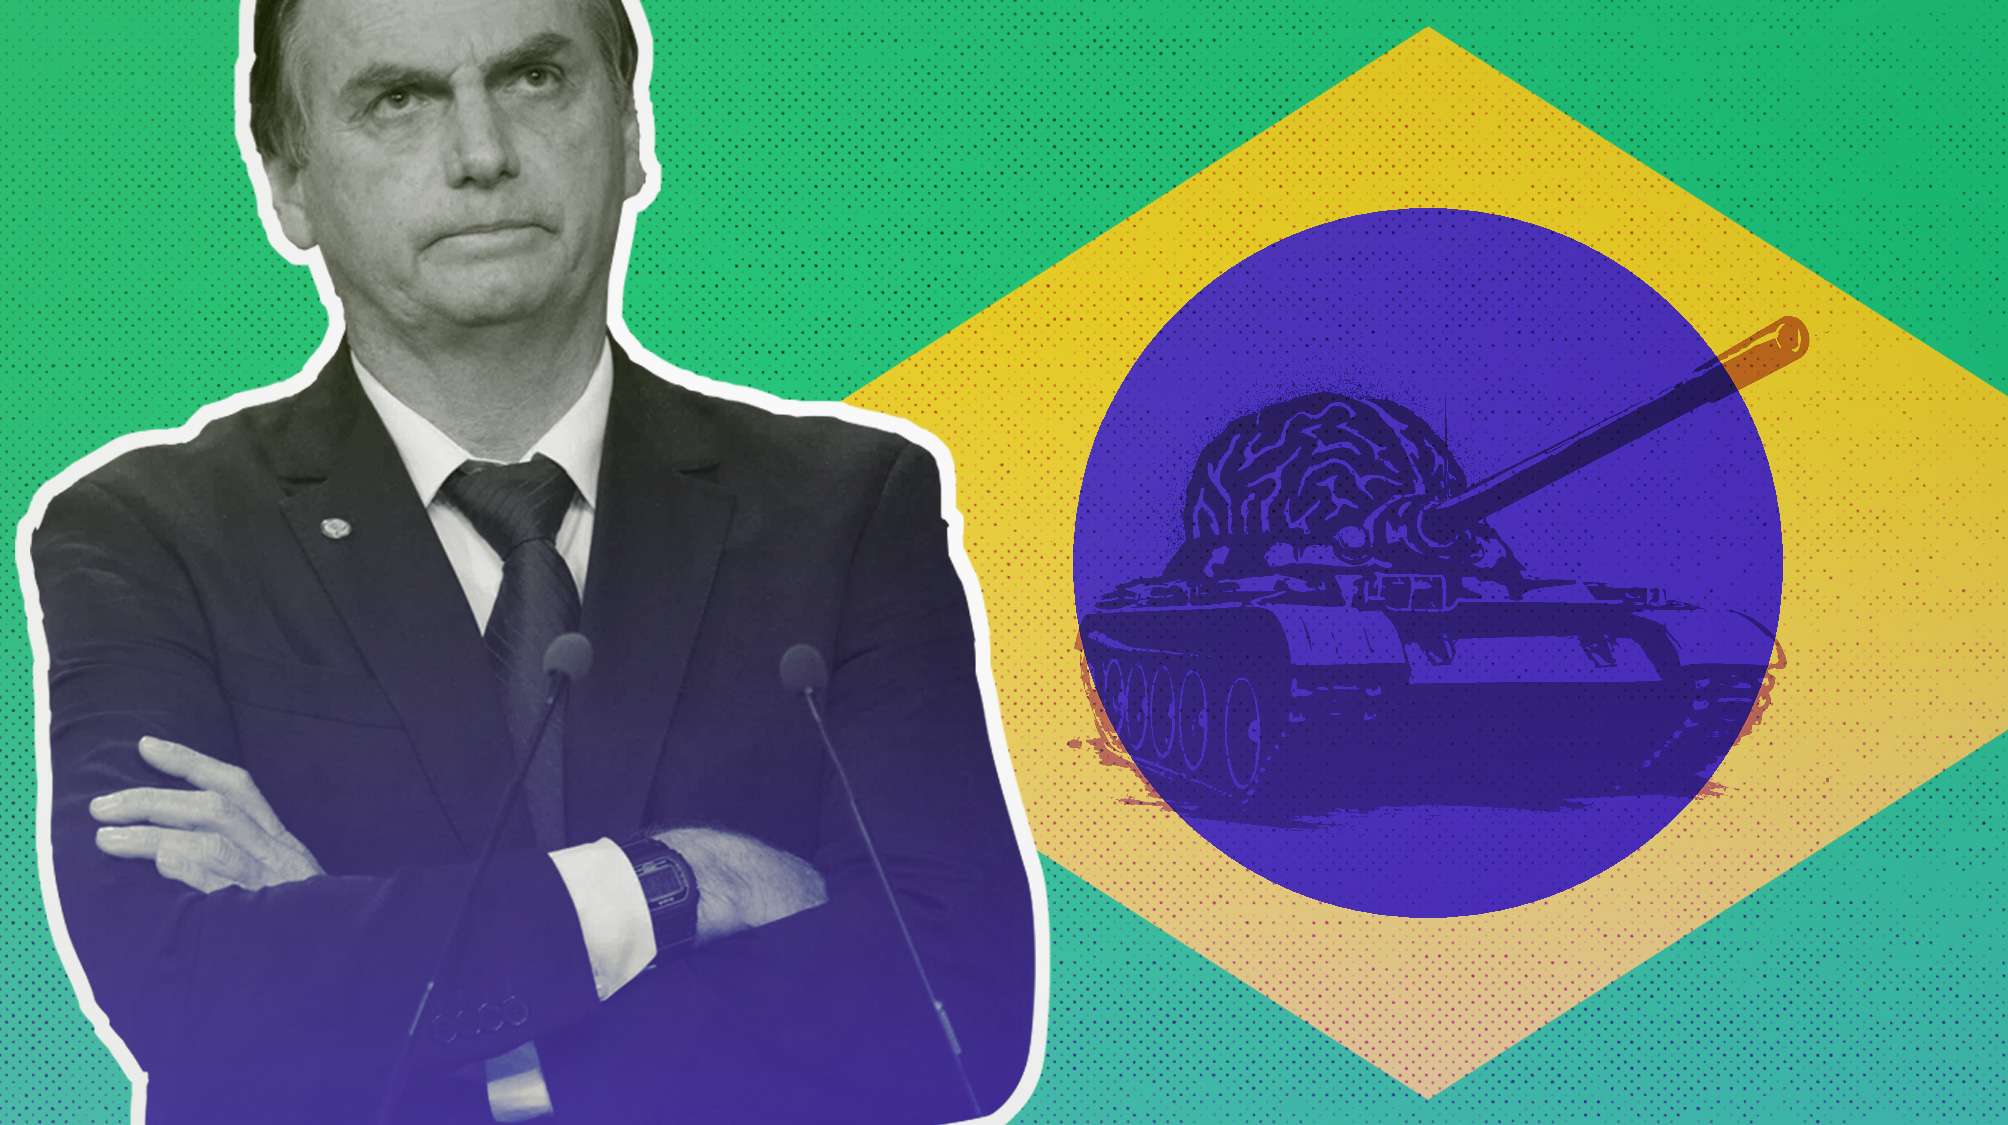 Think tanks y Bolsonaro